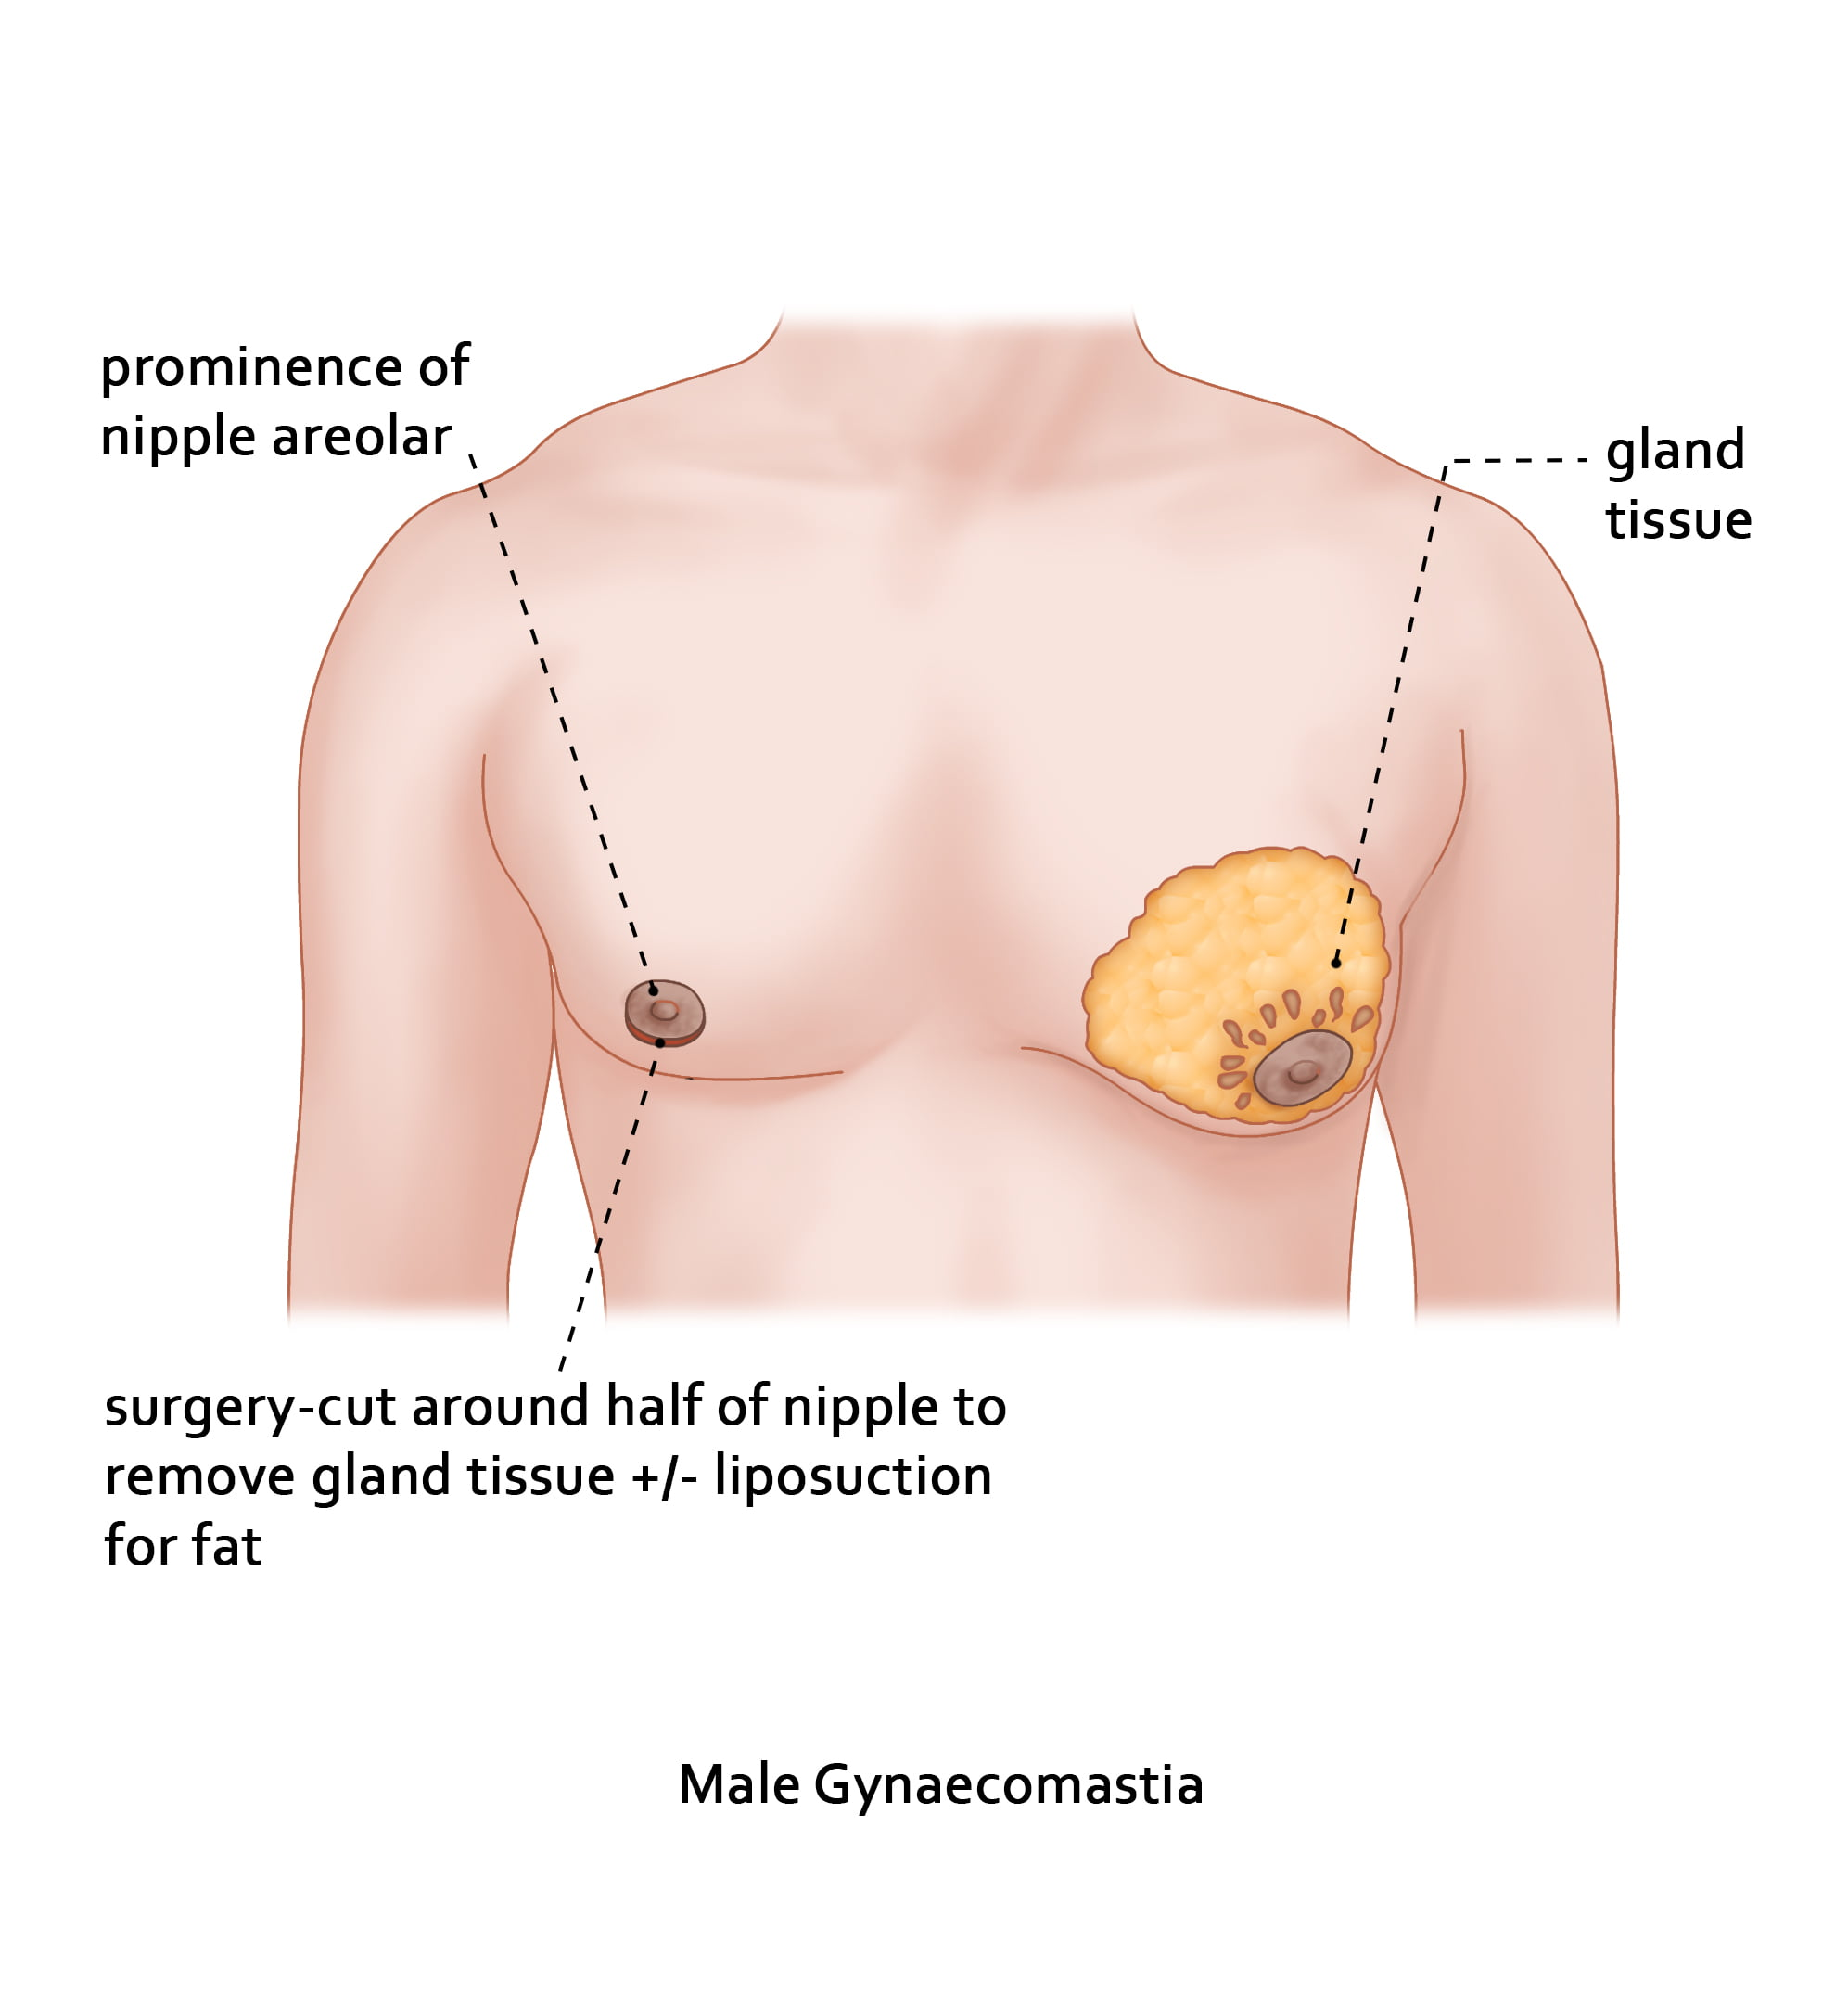 Medical management of Gynaecomastia.